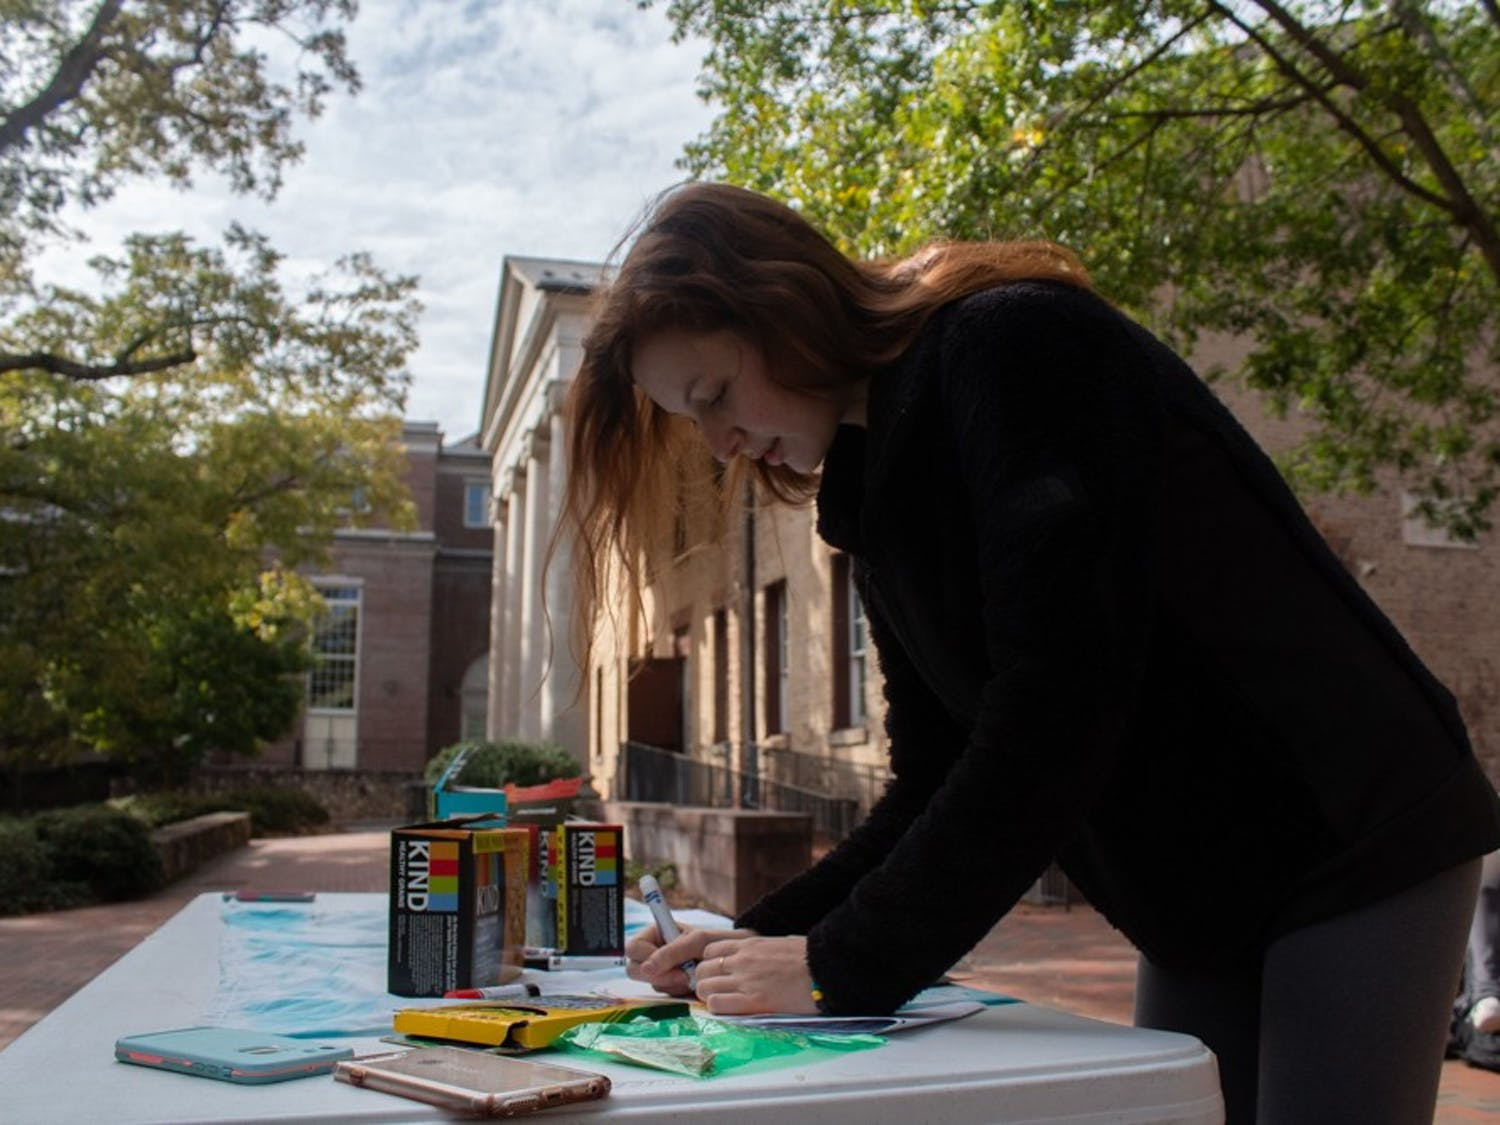 Cassie Teixeira, a first-year exercise and sport science major, writes about physical activities she is grateful for in front of the Campus Y on Monday, Nov. 4, 2019.